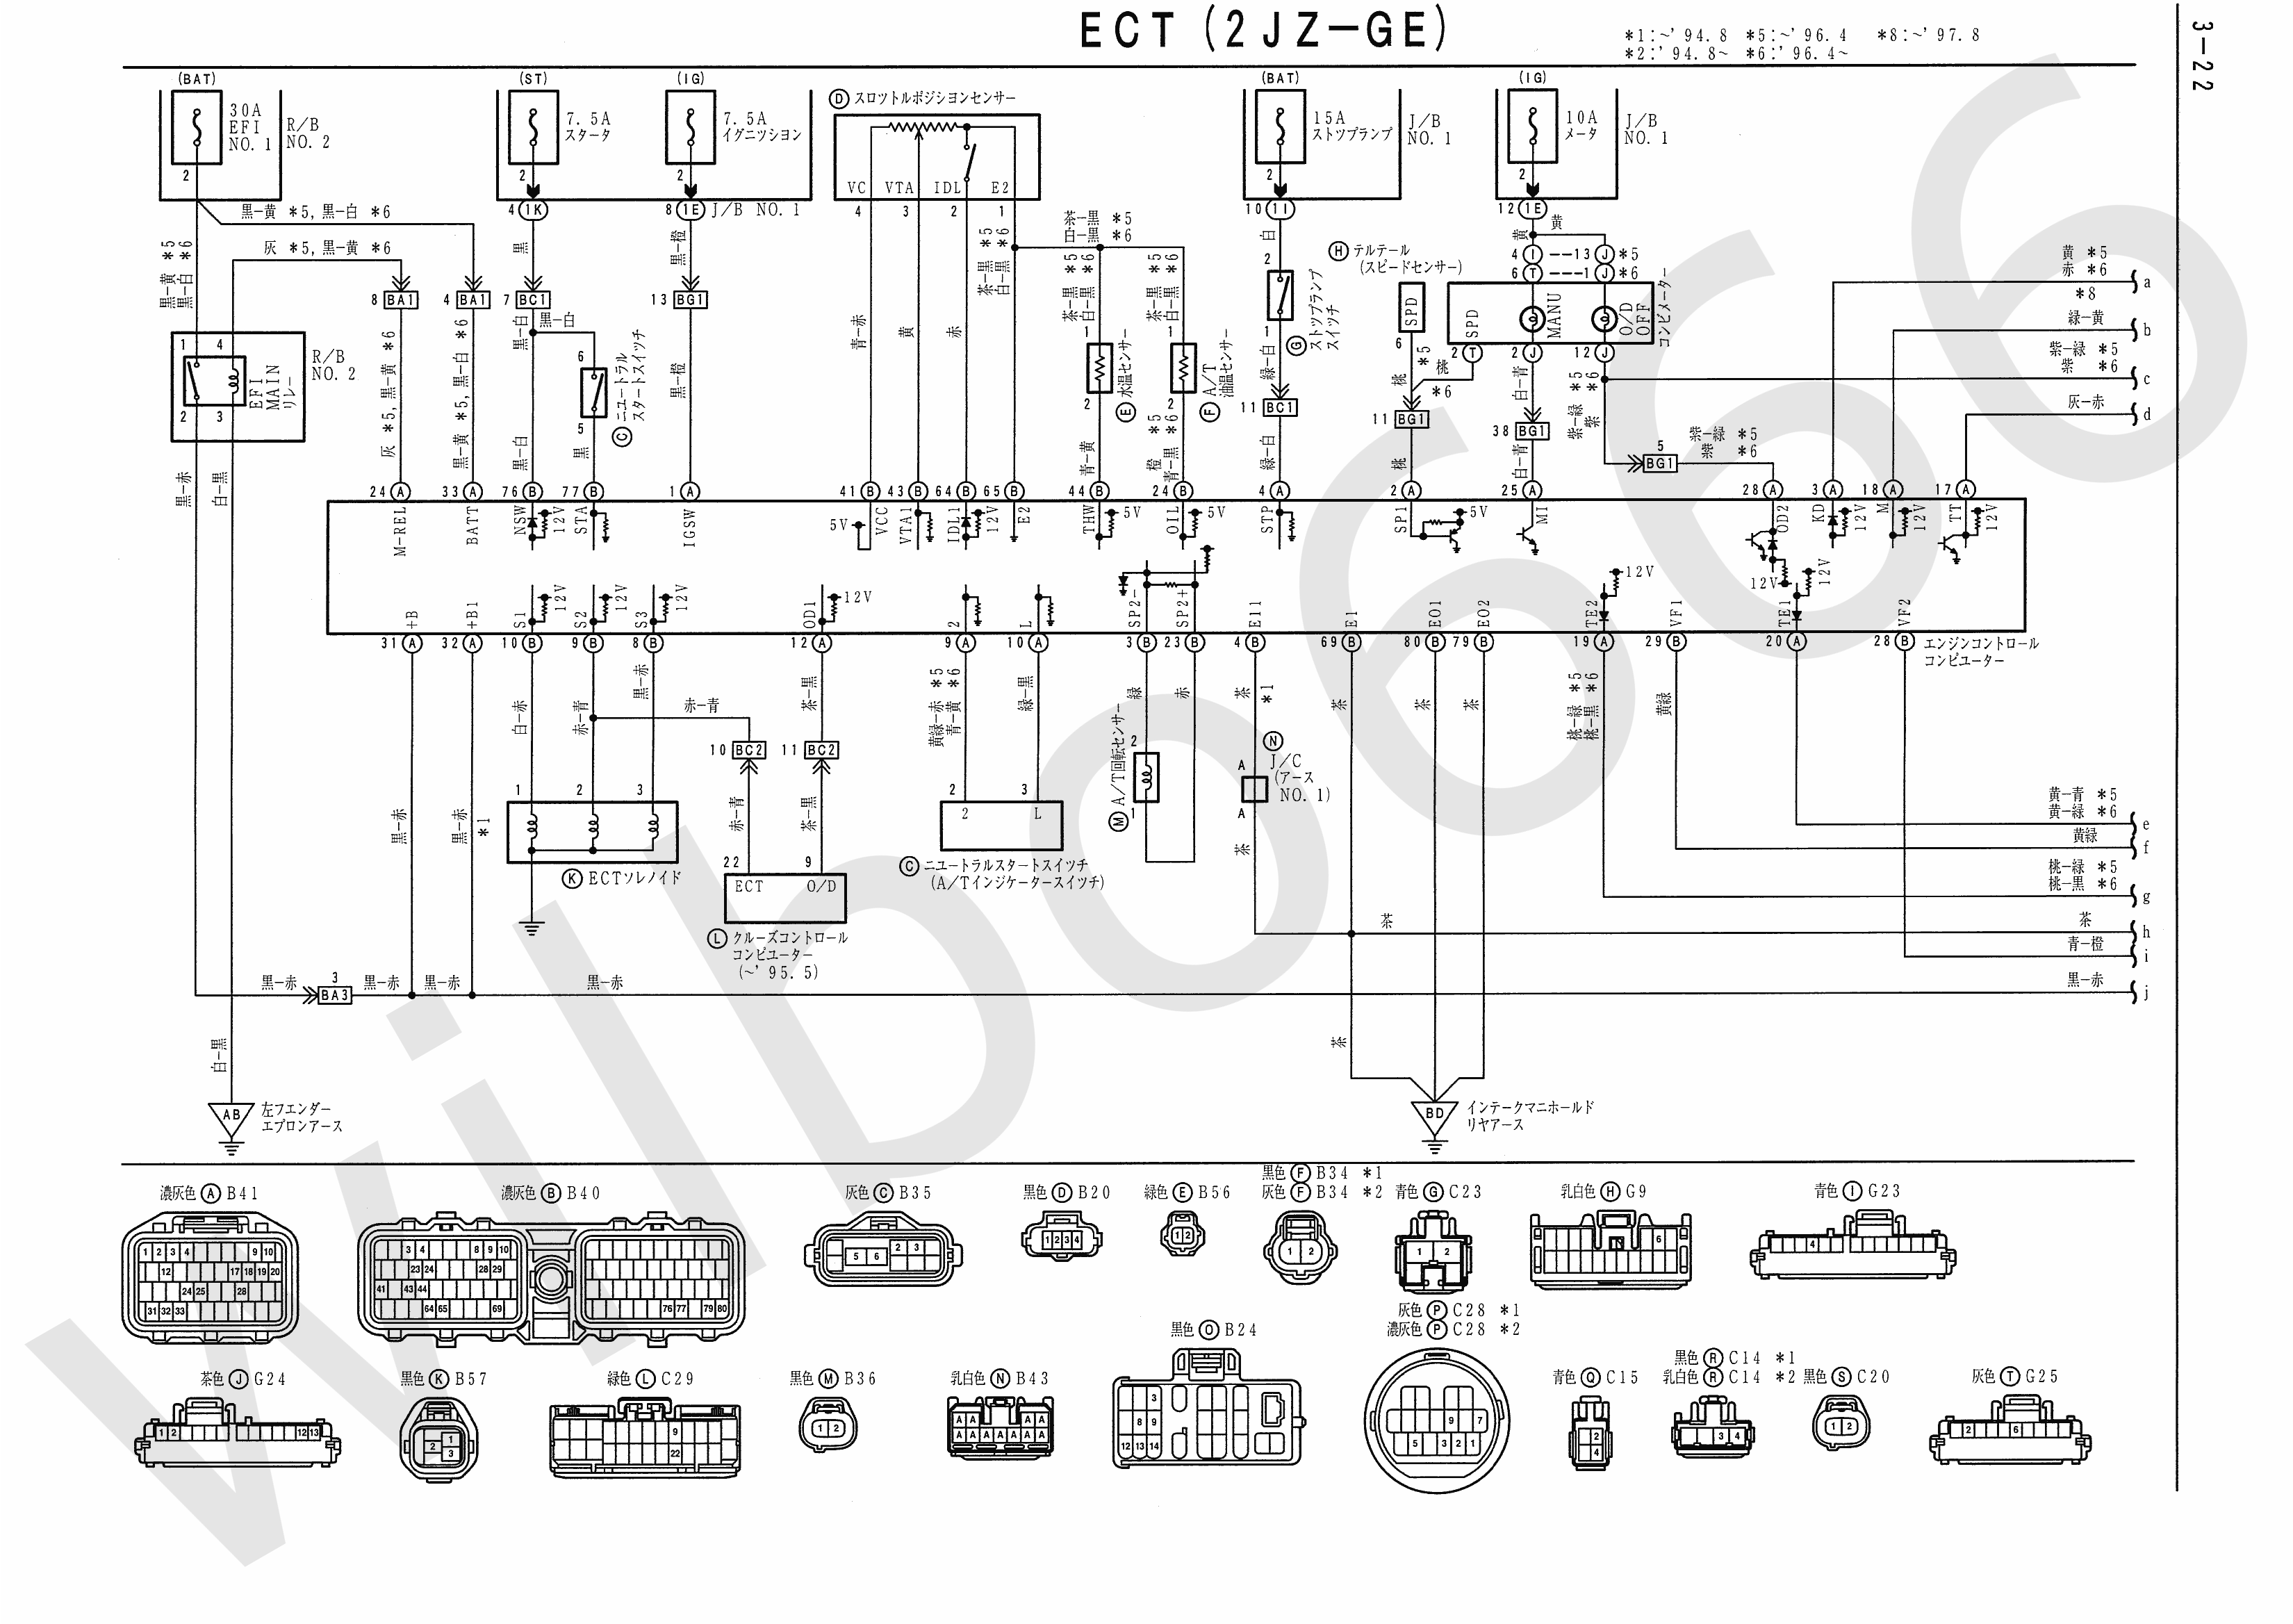 Rco810 Wiring Diagram Auto Electrical Supco 3 In 1 27 Images